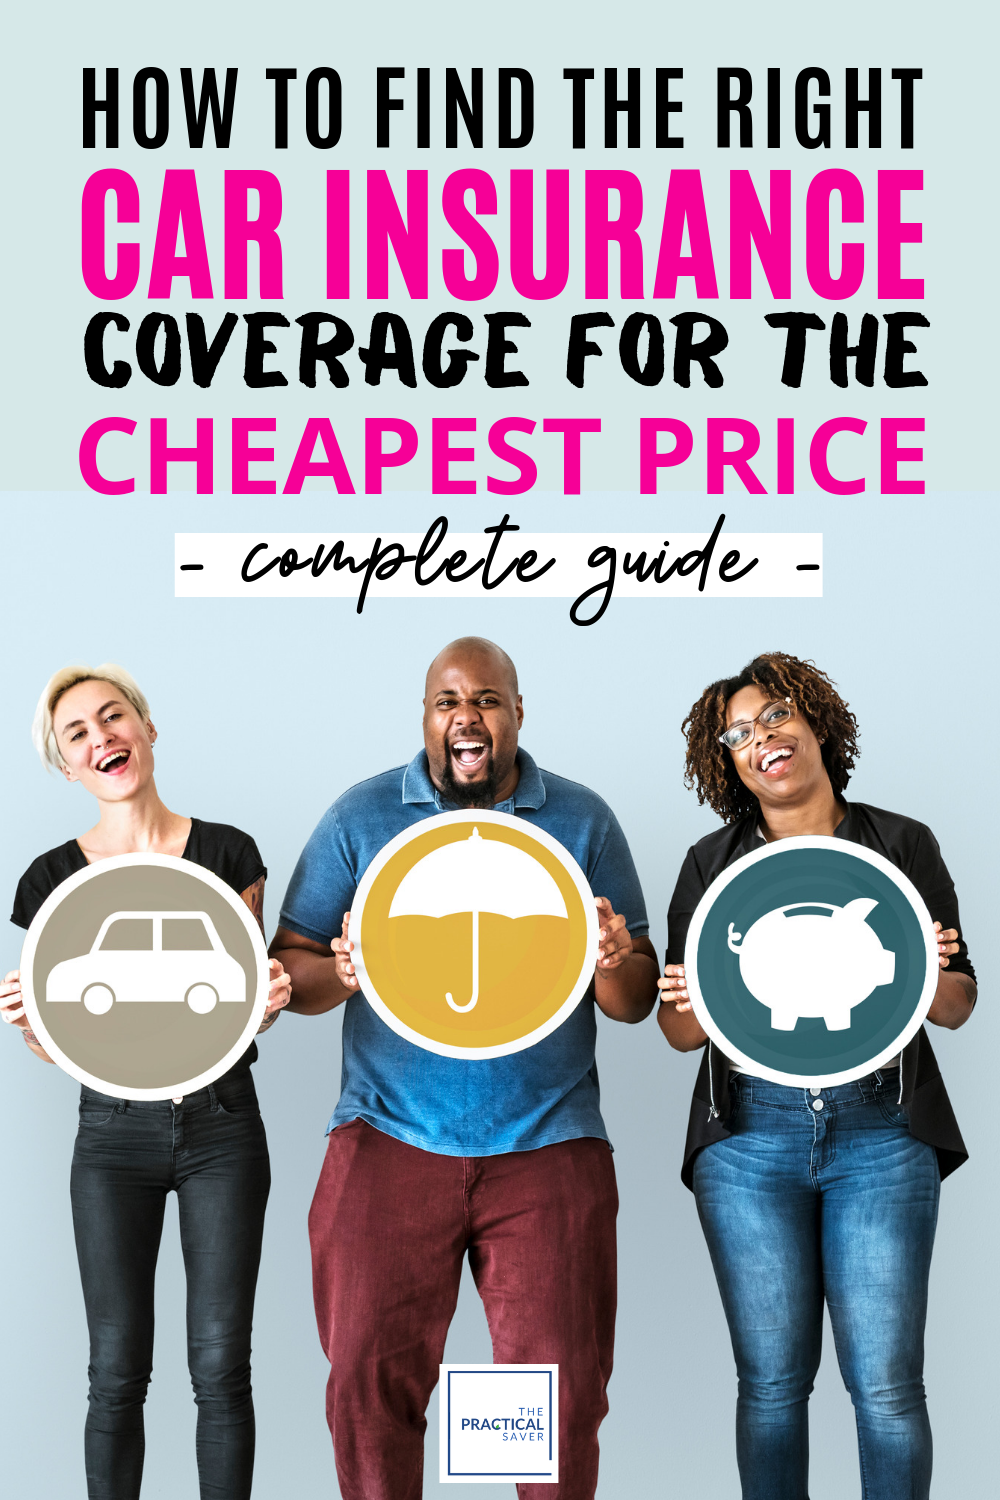 How To Find The Cheapest Car Insurance in 2019 (The